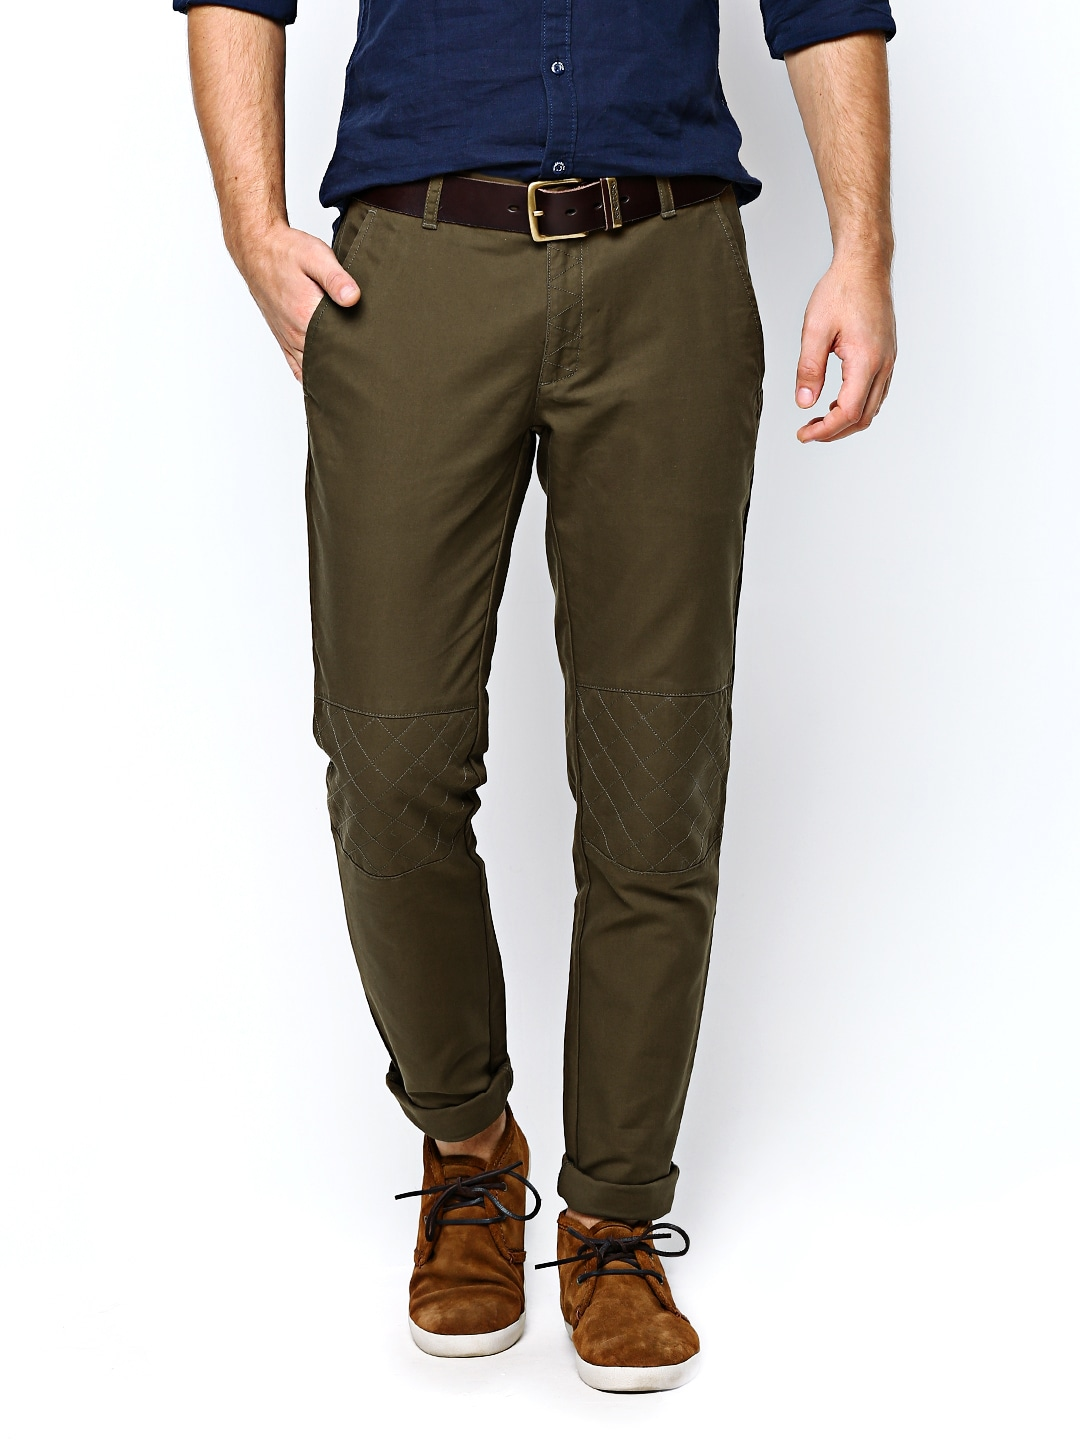 023530433 United Colors of Benetton Men Olive Green Casual Trousers (multicolor)